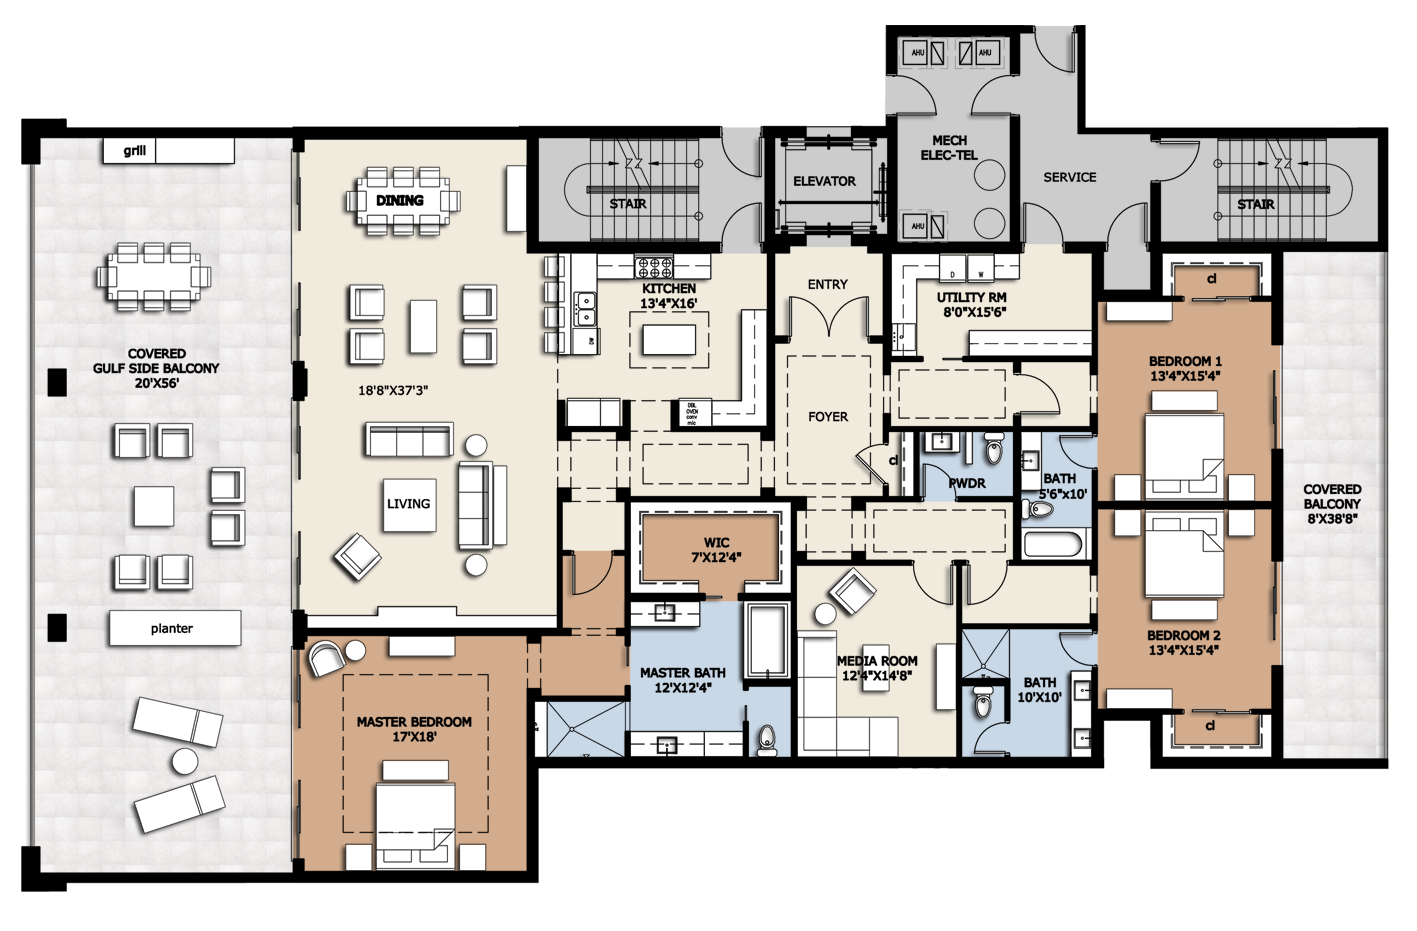 St Lawrence Homes Floor Plans Infinity Longboat Key Is A New Luxury Condo Development